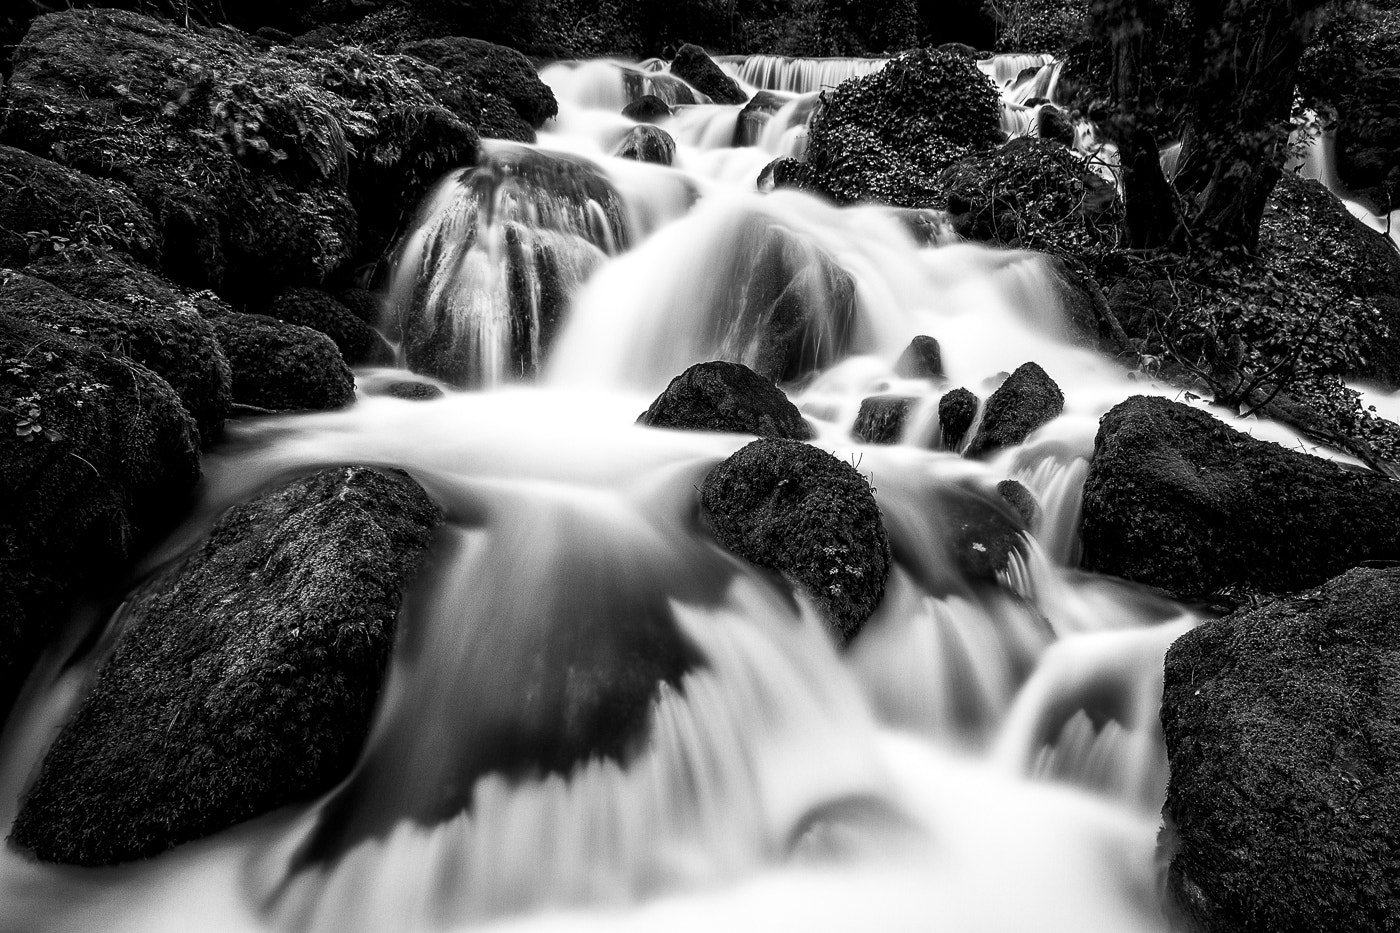 Photograph Sweety torrent by Bastien HAJDUK on 500px